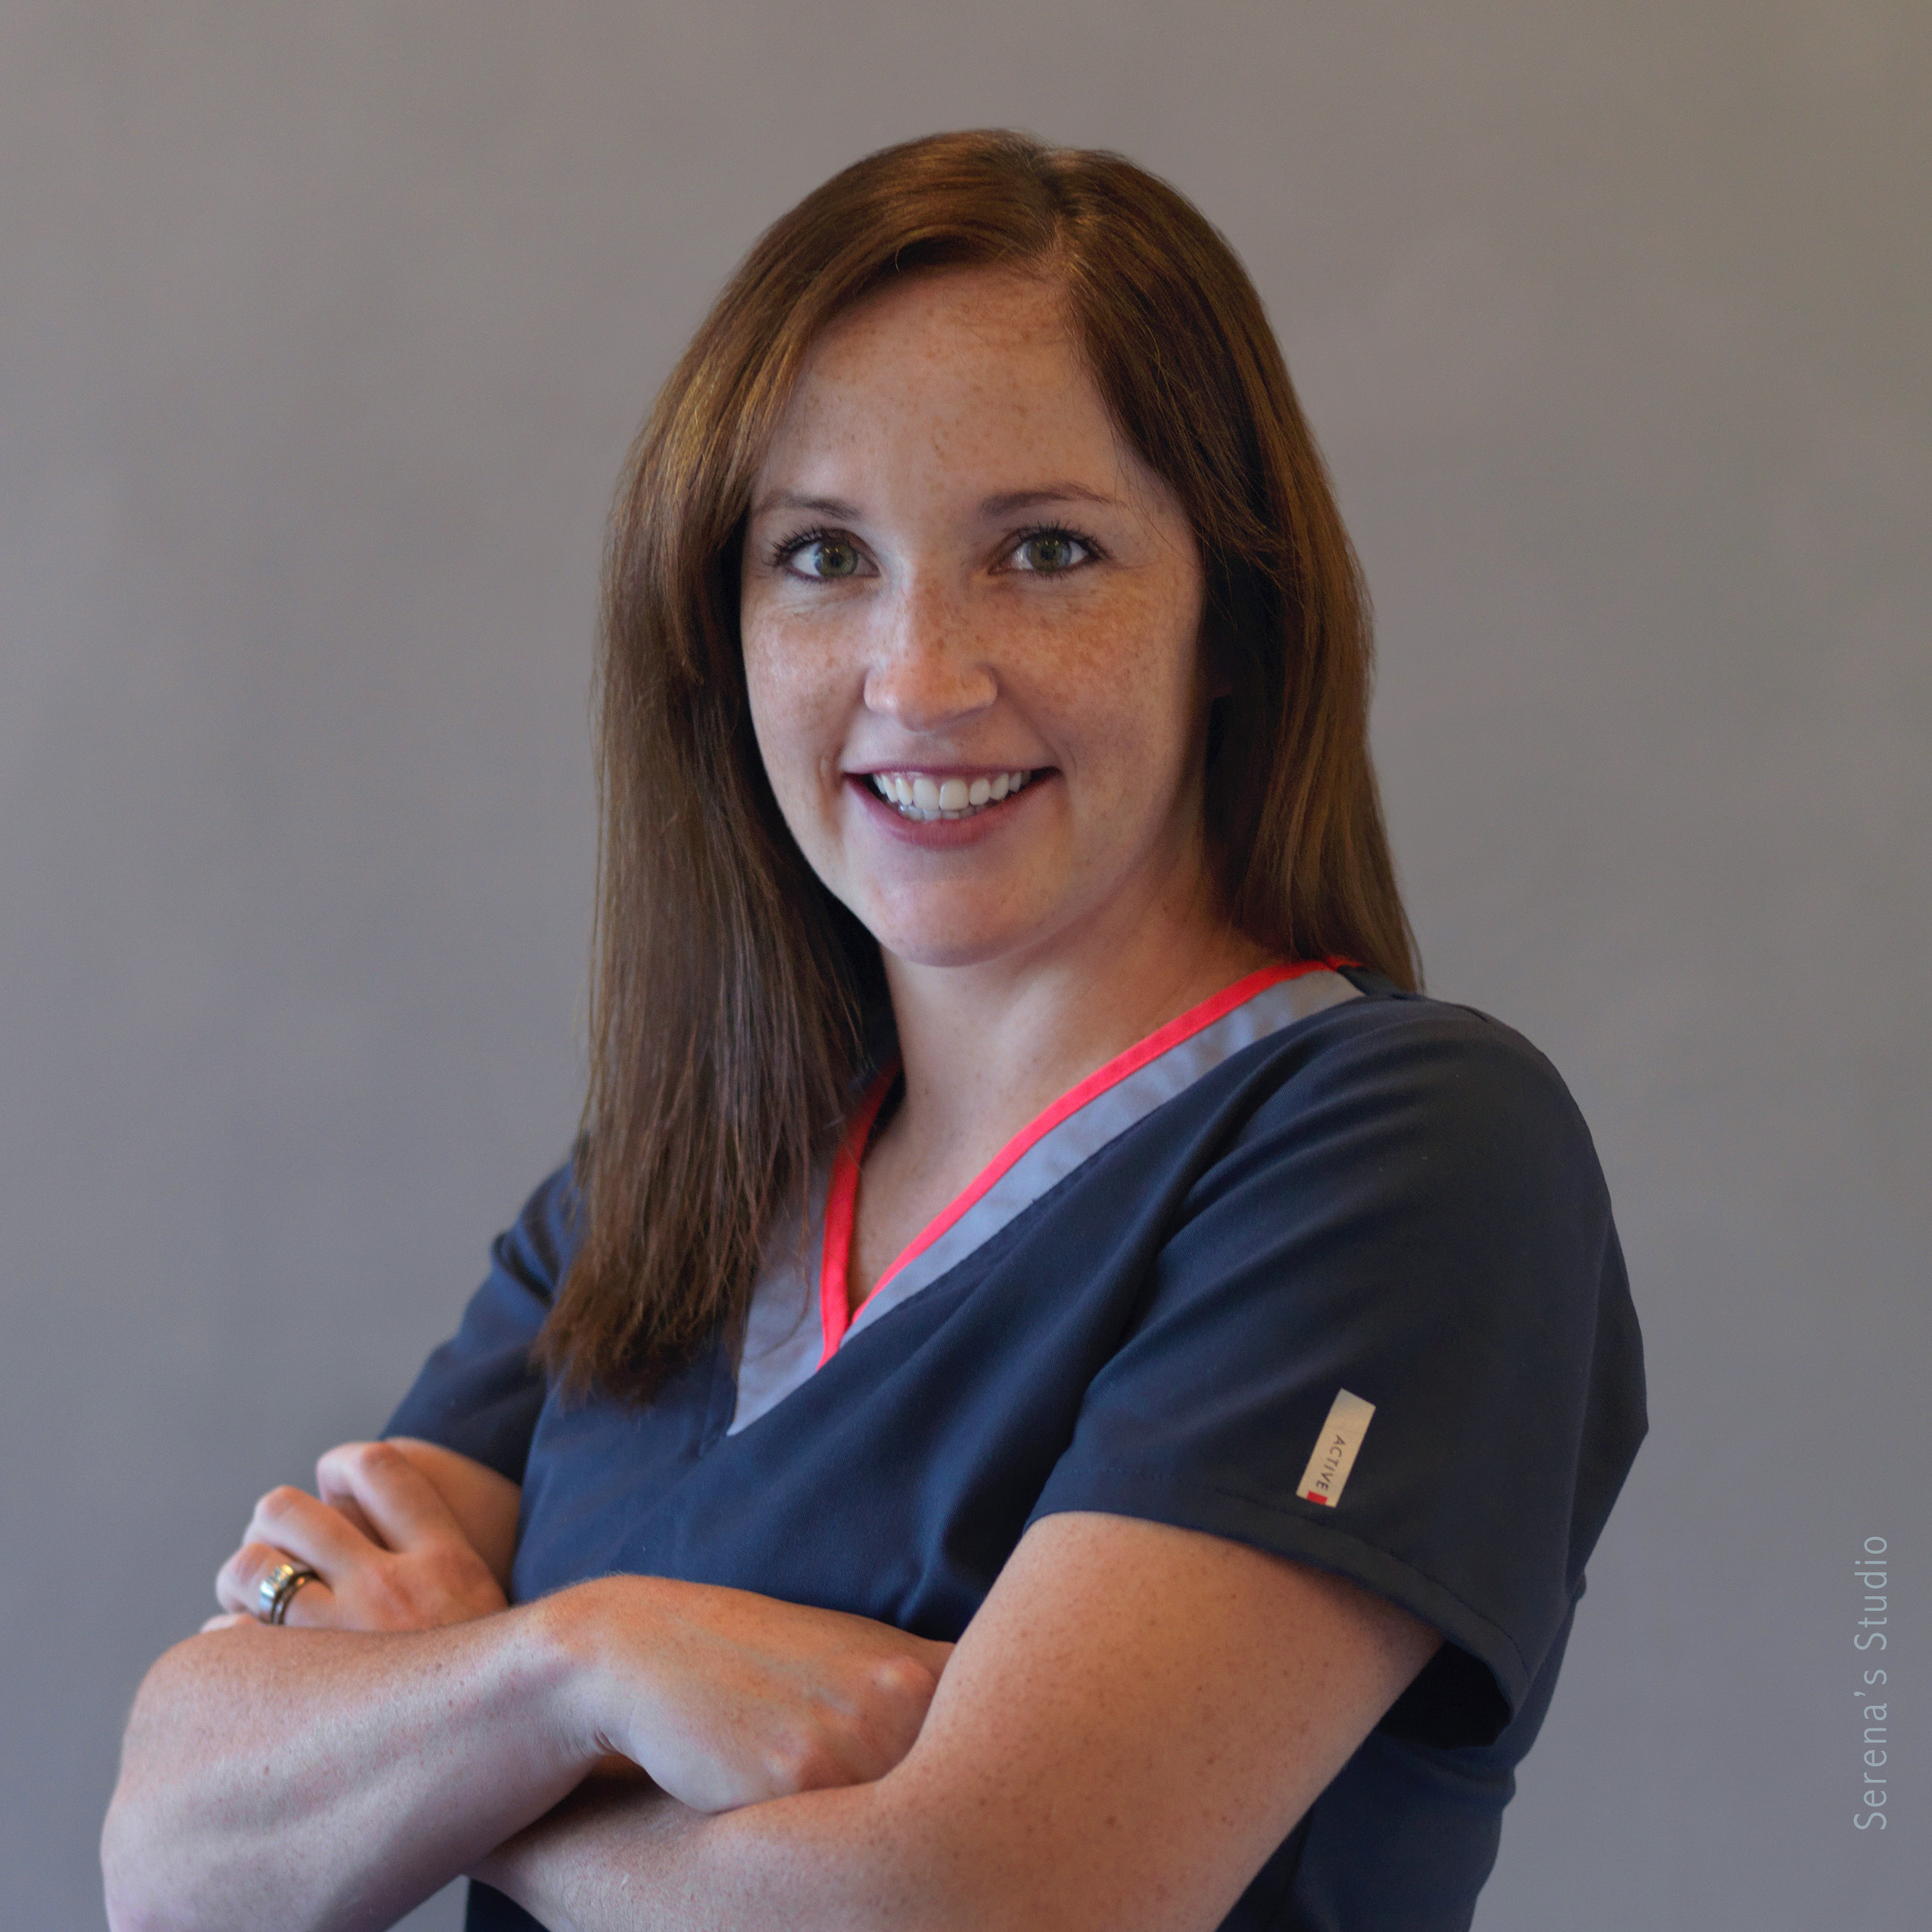 Dr. Megan Catallozzi ➞